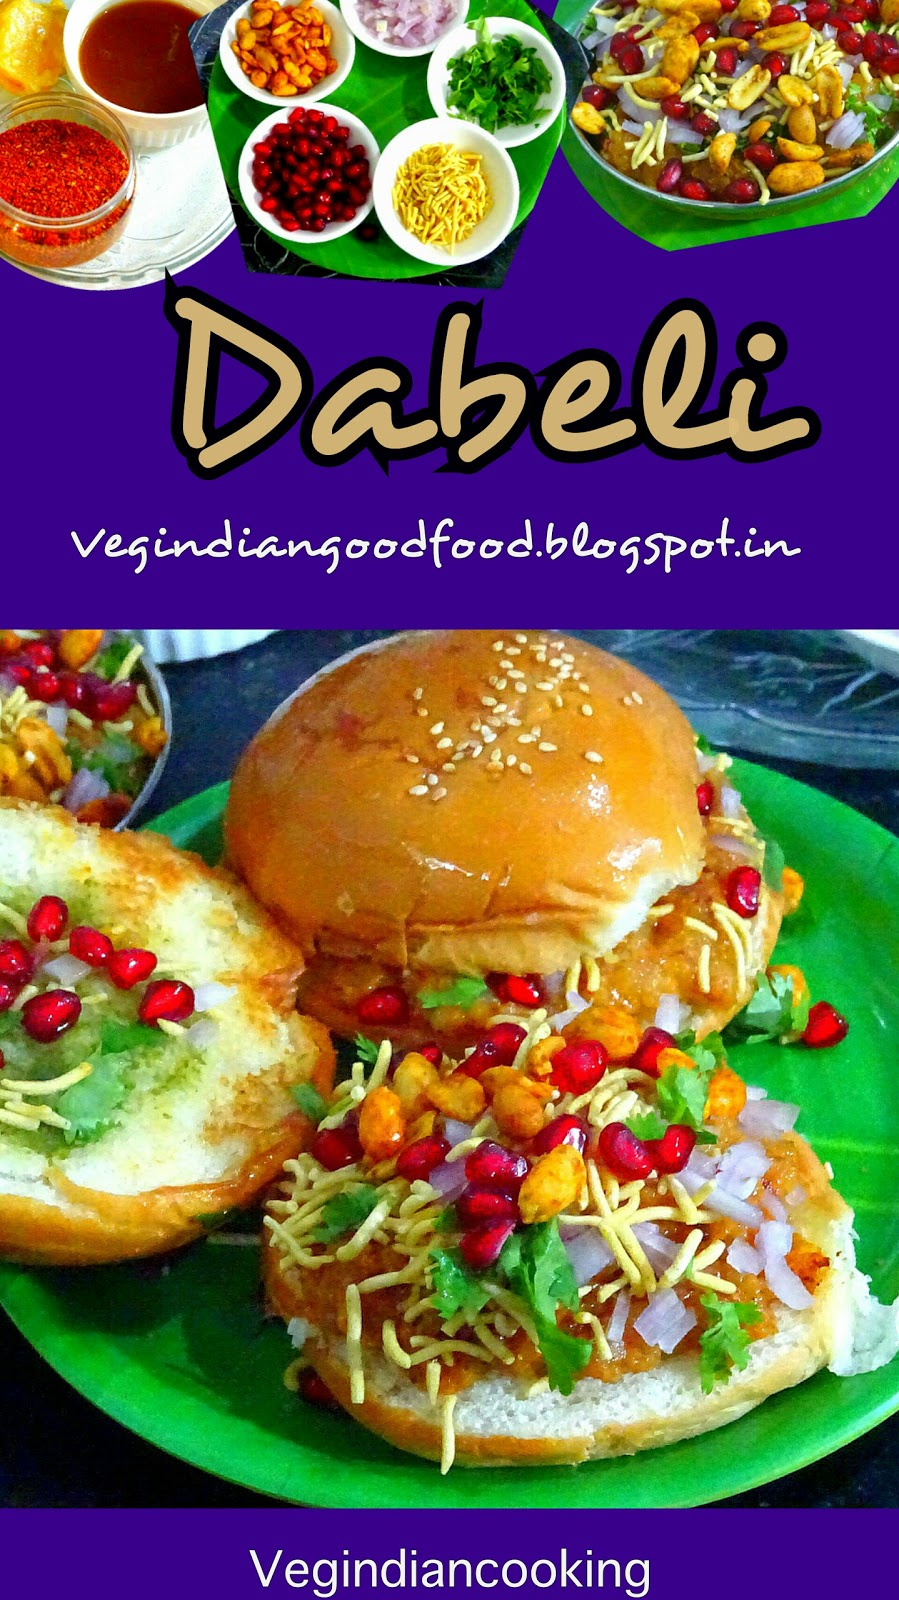 Veg indian cooking dabeli saturday september 17 2016 forumfinder Image collections